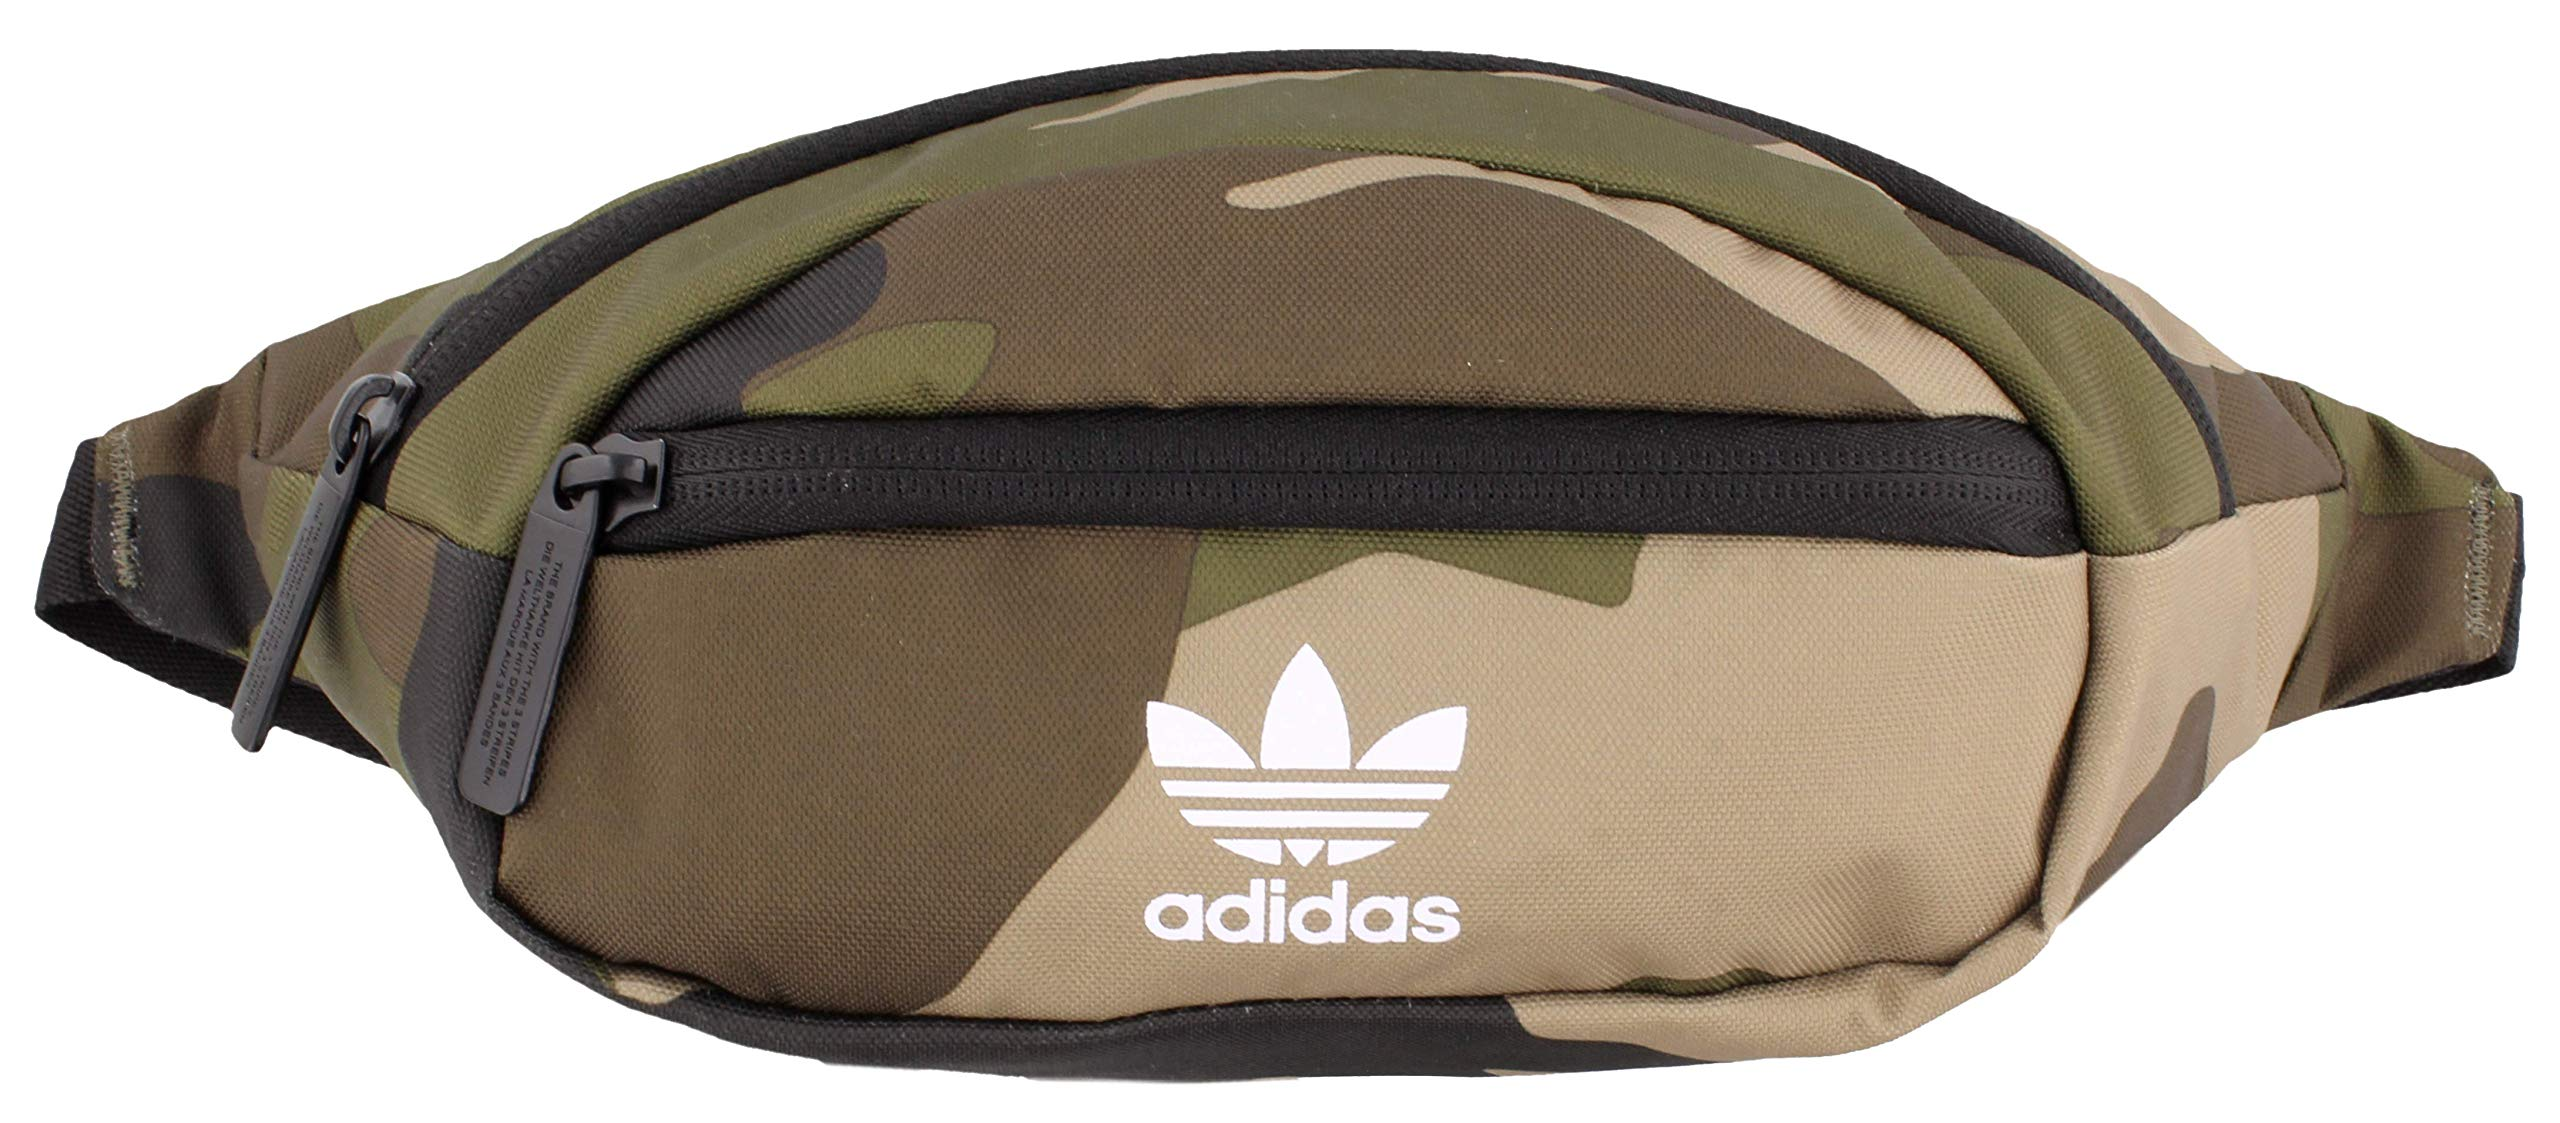 adidas Originals Unisex National Waist Pack, Olive Cargo Aw Camo, ONE SIZE by adidas Originals